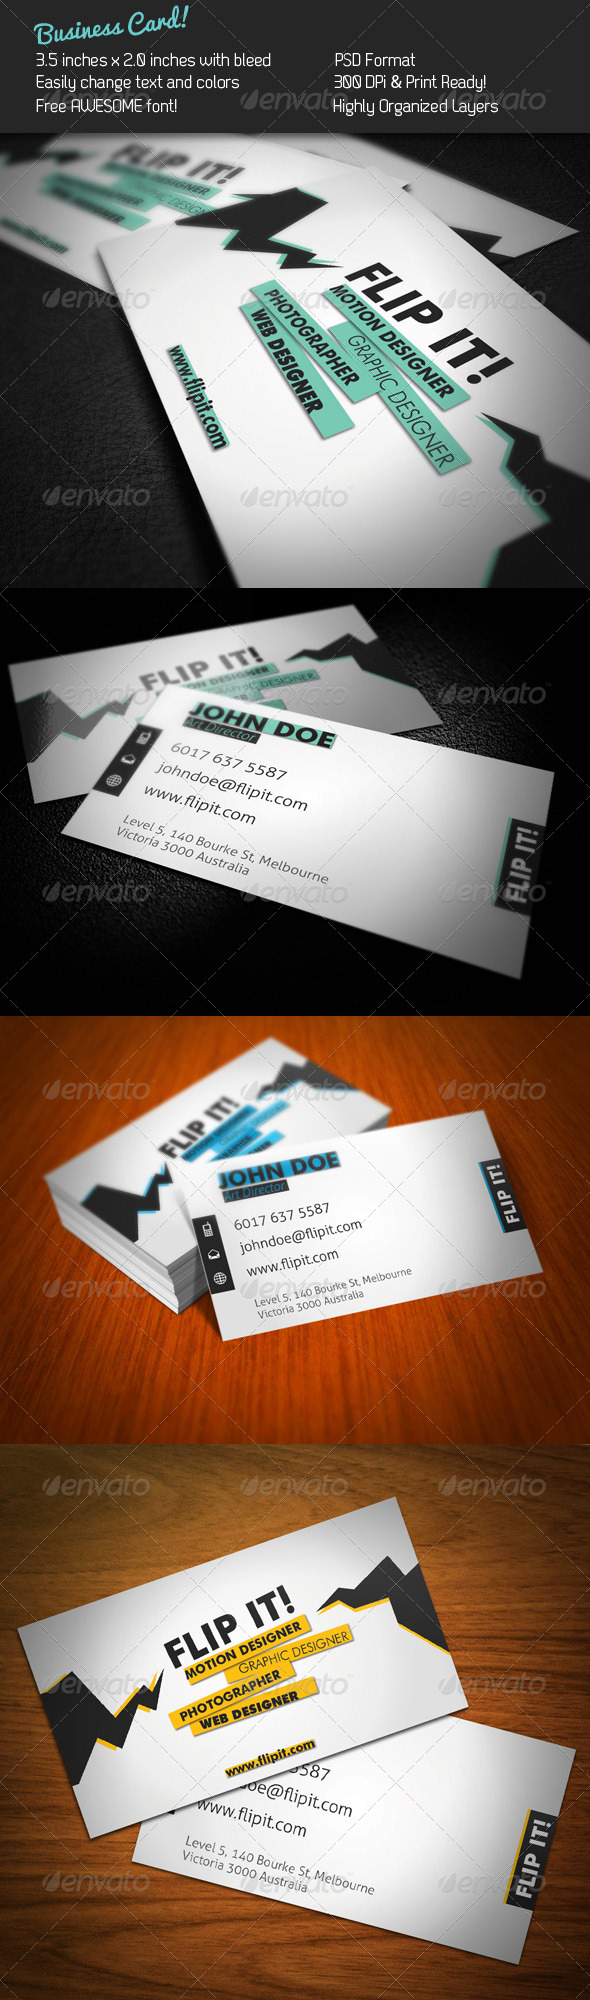 FLIP IT! Business Card - Creative Business Cards